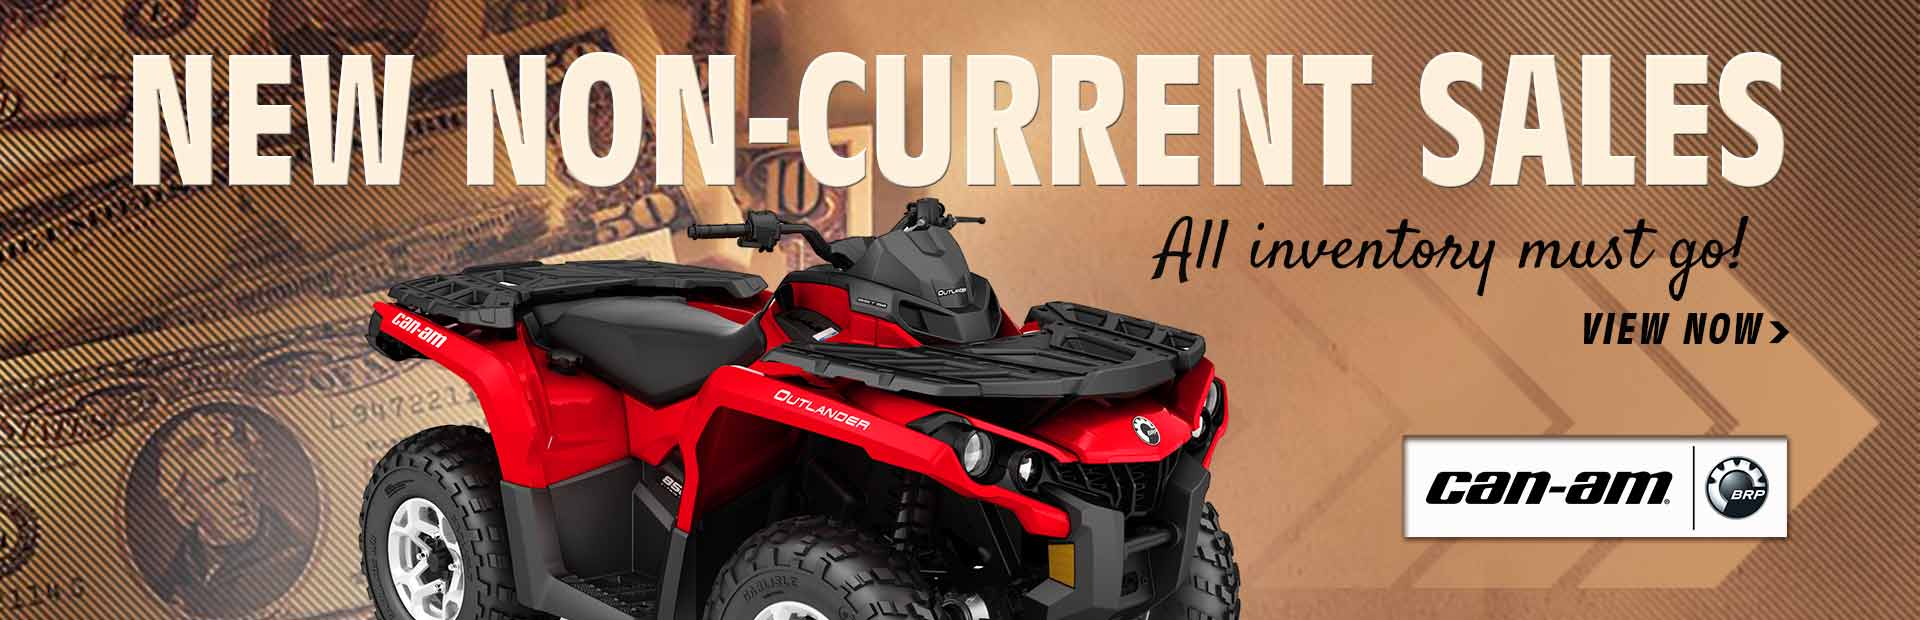 New Non-Current Sales: Click here to view Can-Am ATVs. All inventory must go!